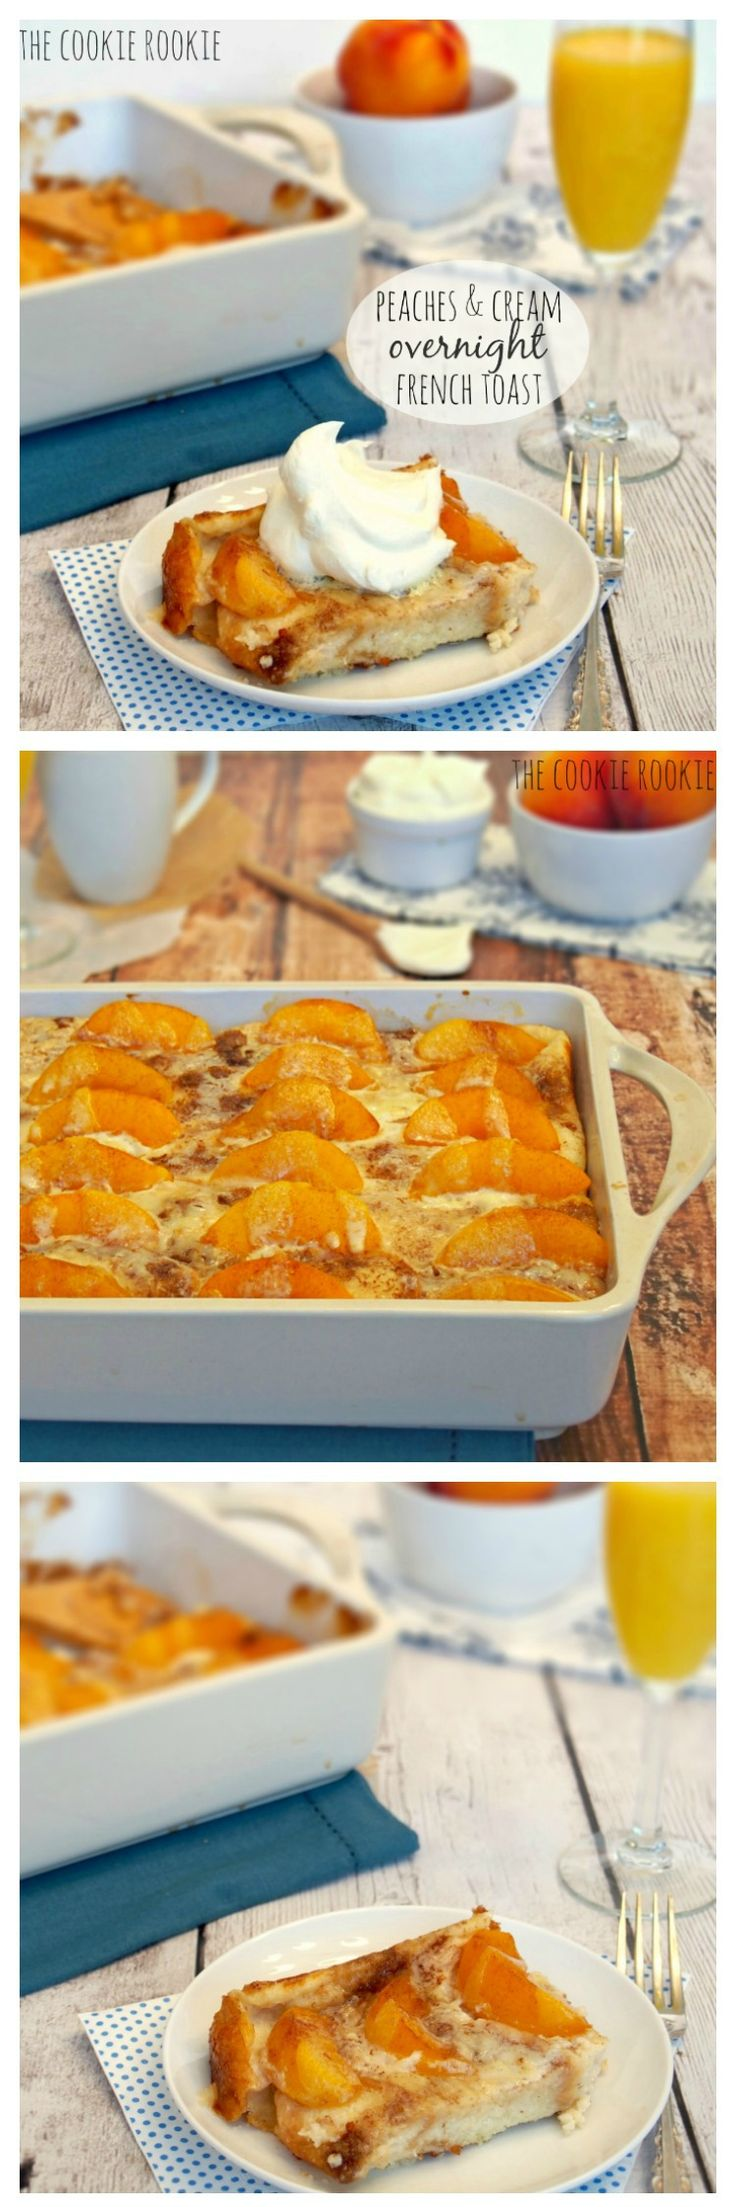 Peach and Cream French Overnight French Toast! The BEST EVER brunch recipe. Easy!!! I love french toast bakes! - The Cookie Rookie